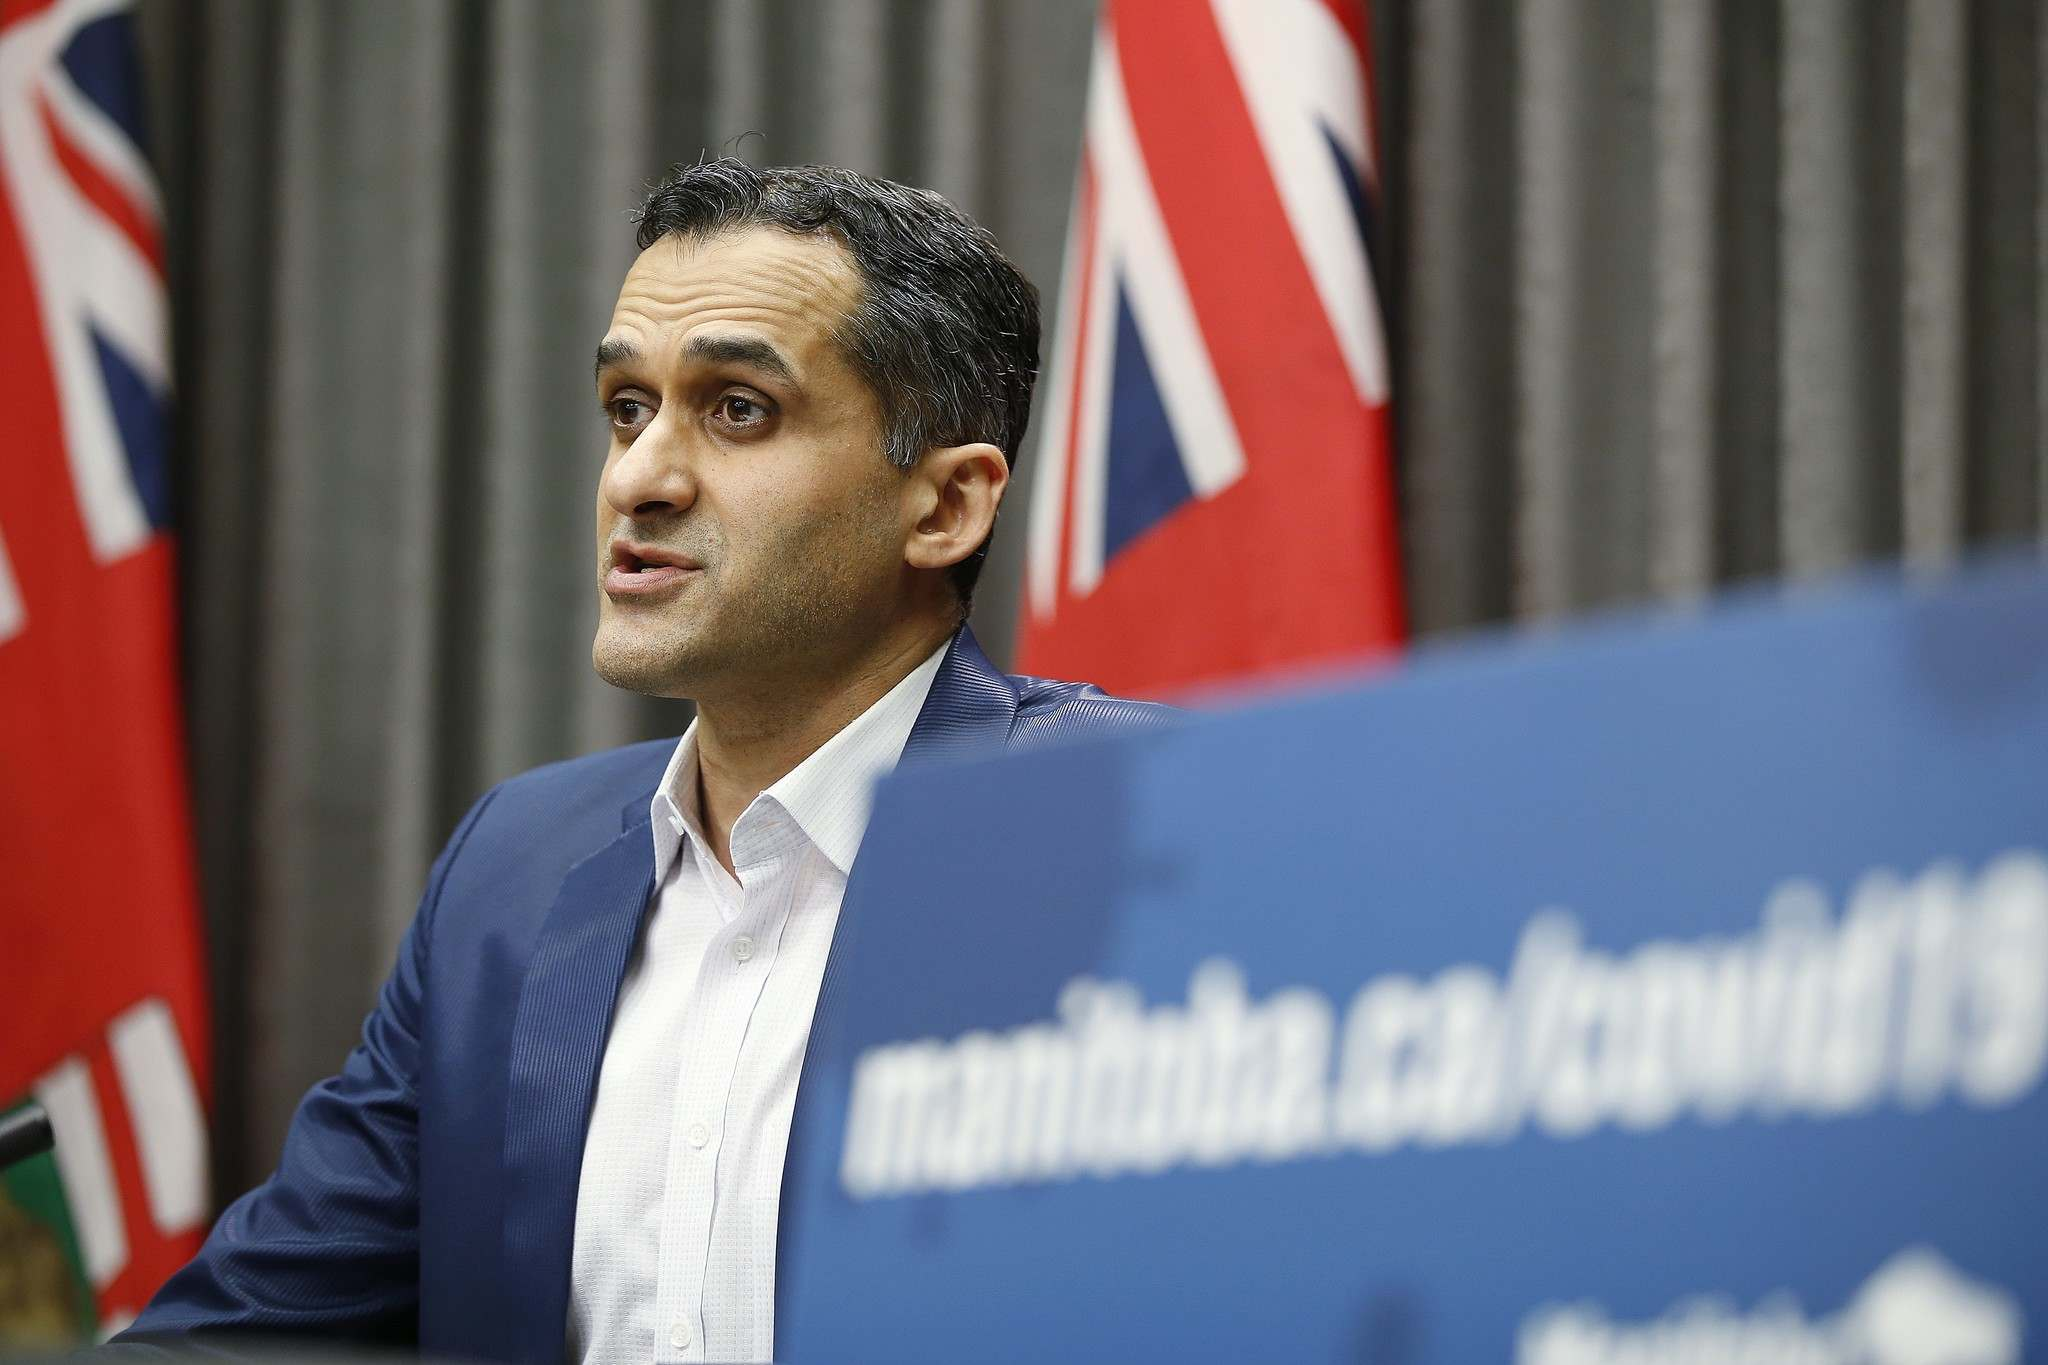 About 32 per cent of all cases in Manitoba are testing positive for a variant, says Dr. Jazz Atwal, Manitoba deputy chief provincial public health officer. (John Woods / The Canadian Press files)</p>